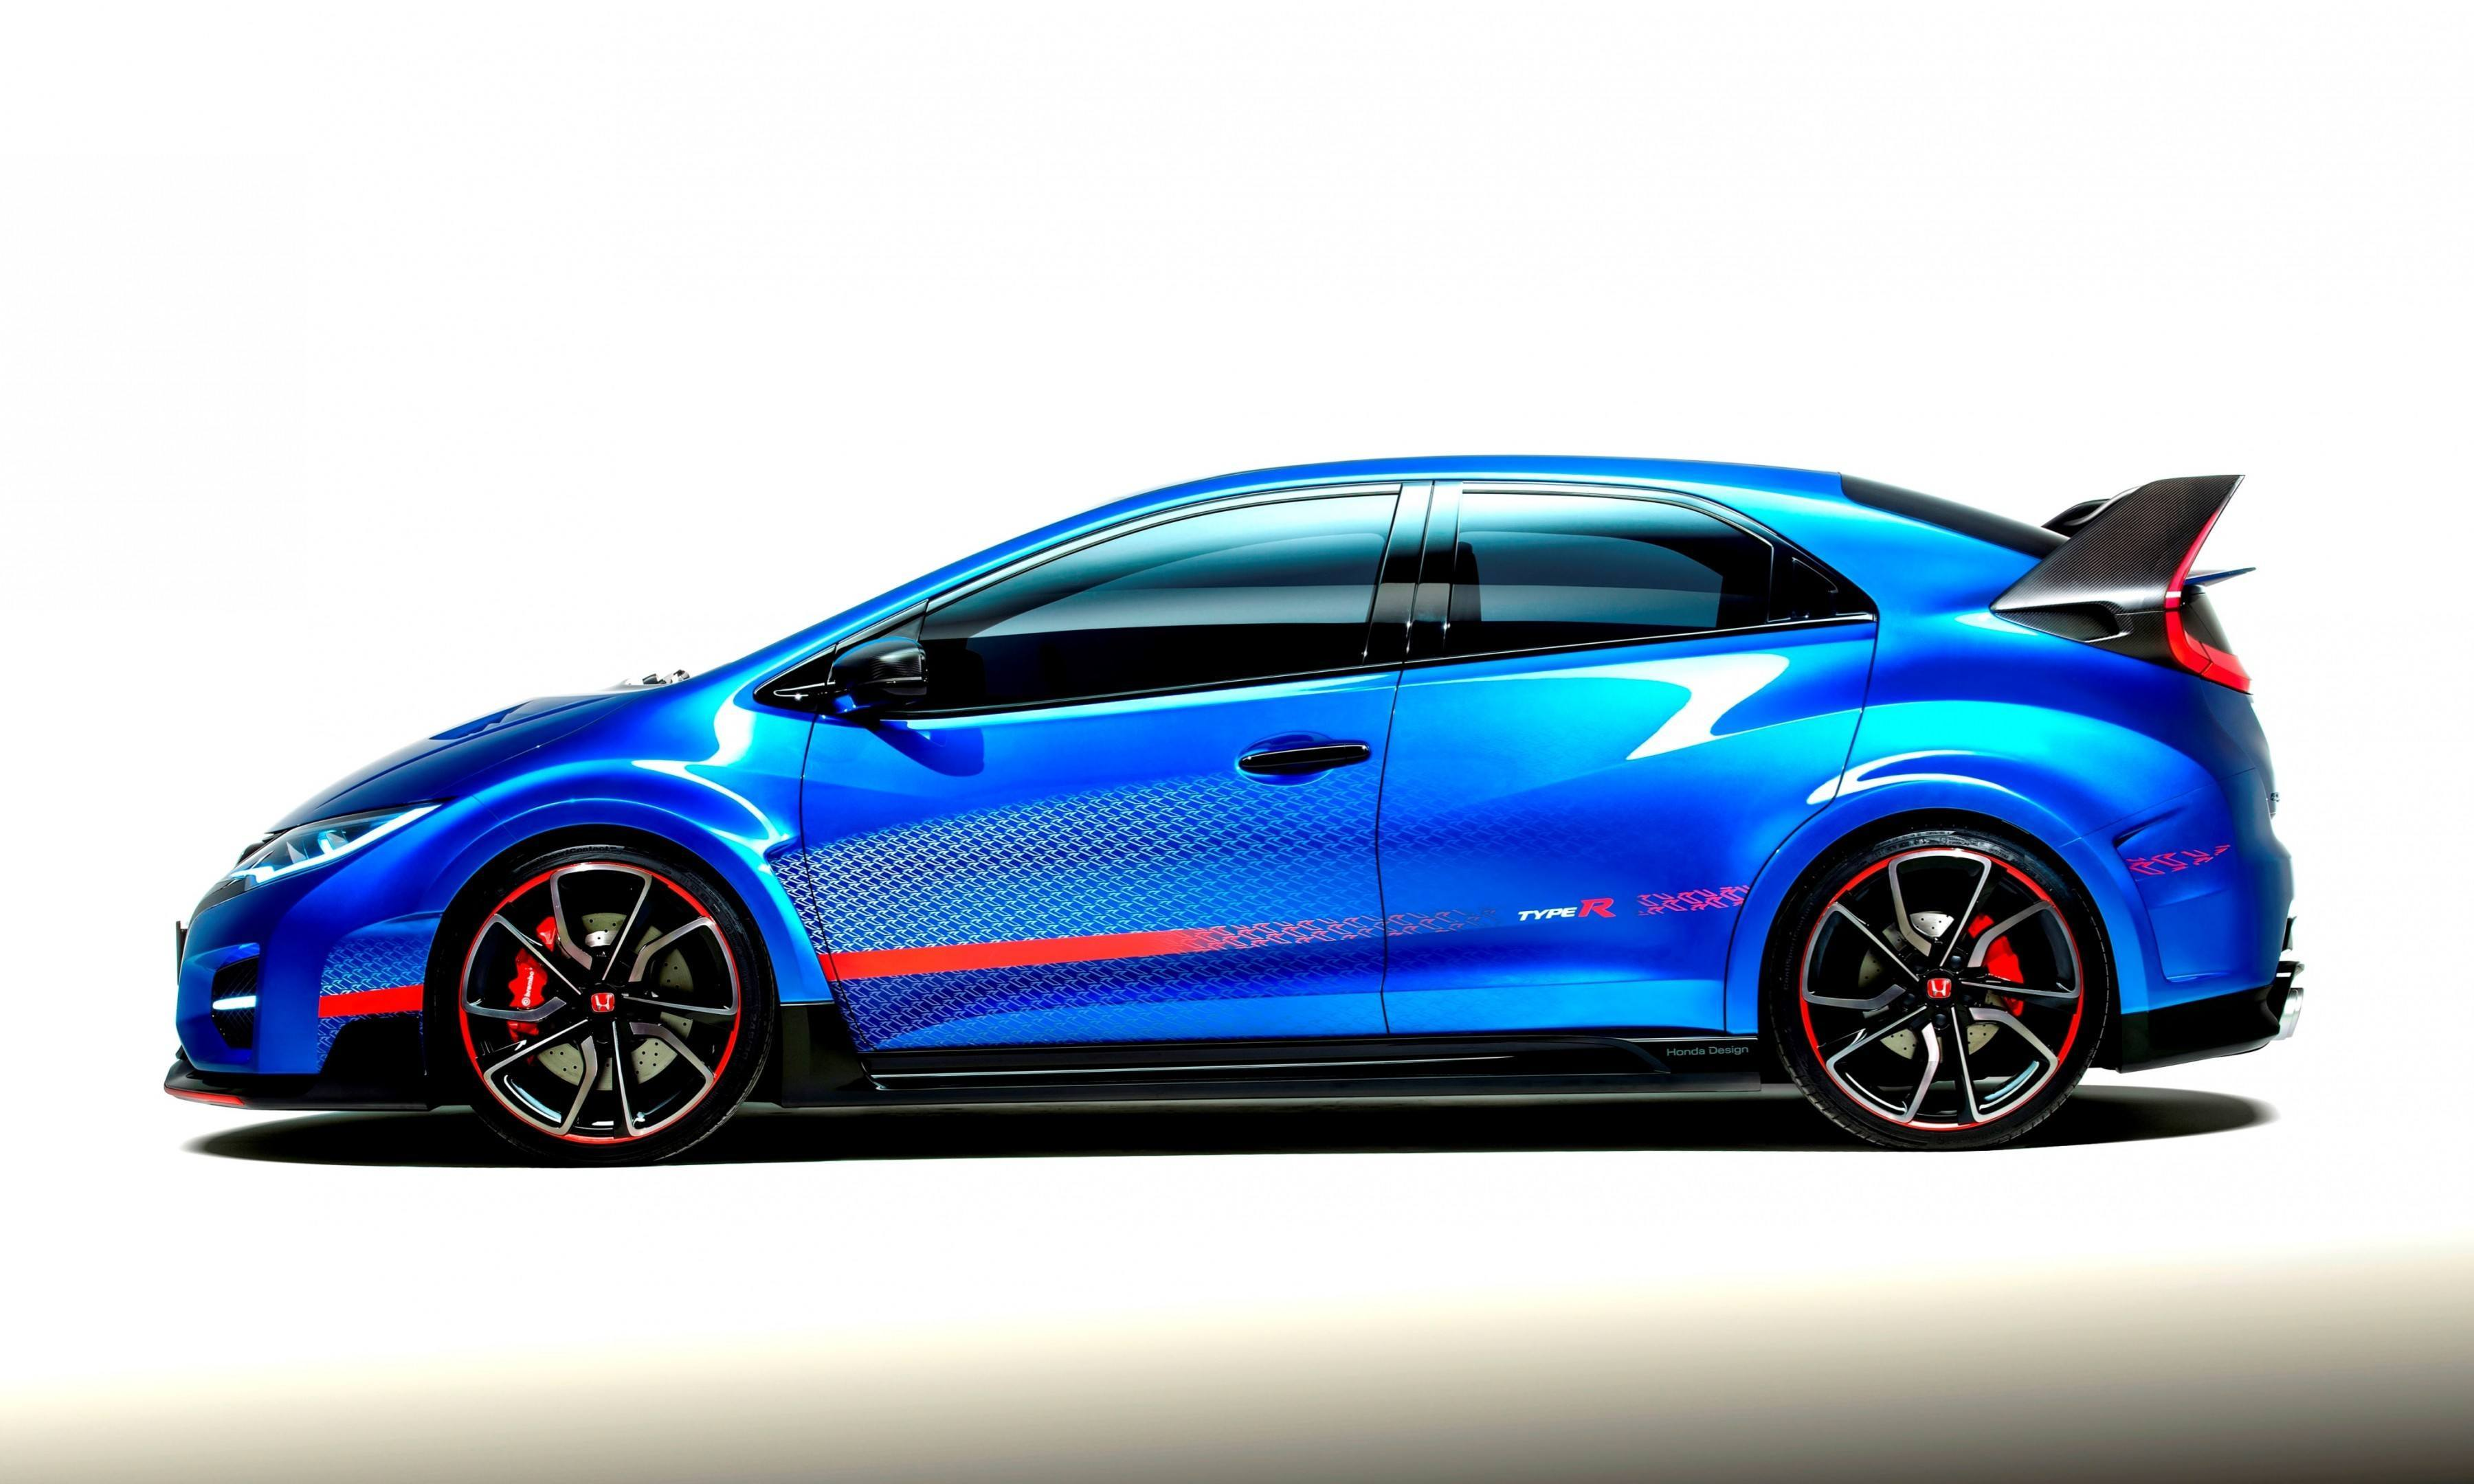 2015 Honda Civic Type R Previewed By Crisp and Clean New ...